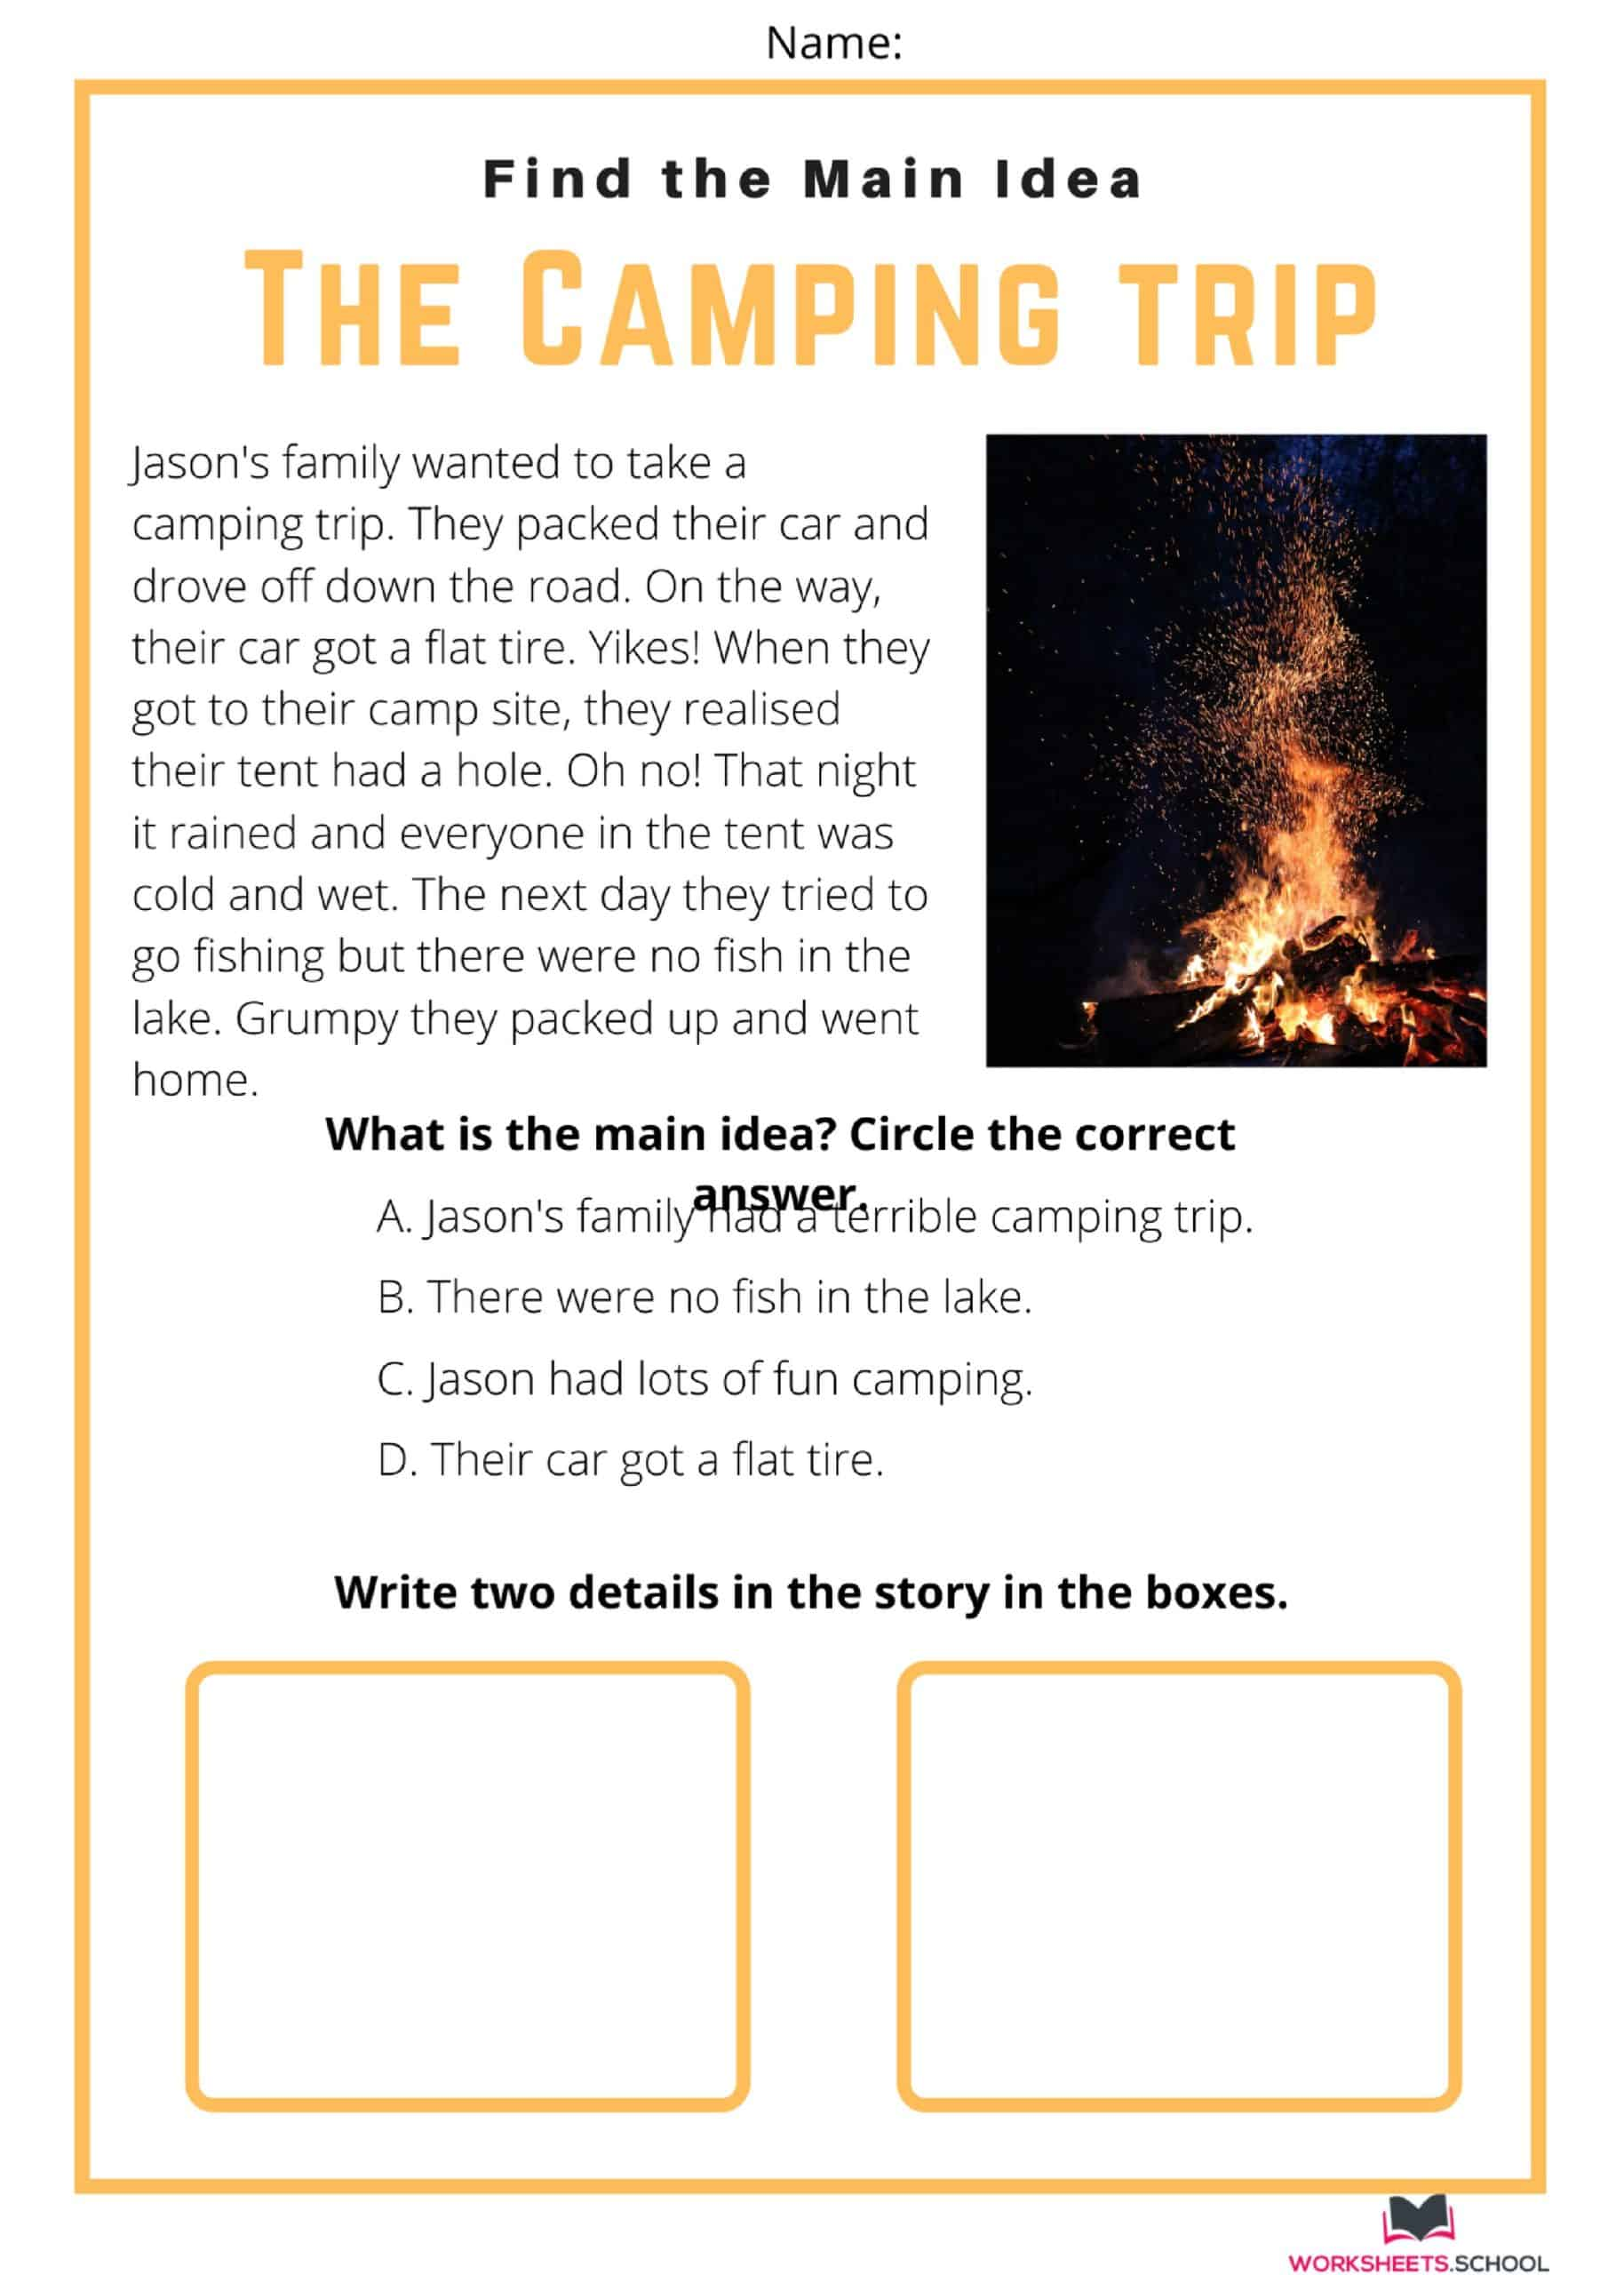 Main Idea Worksheet - The Camping Trip